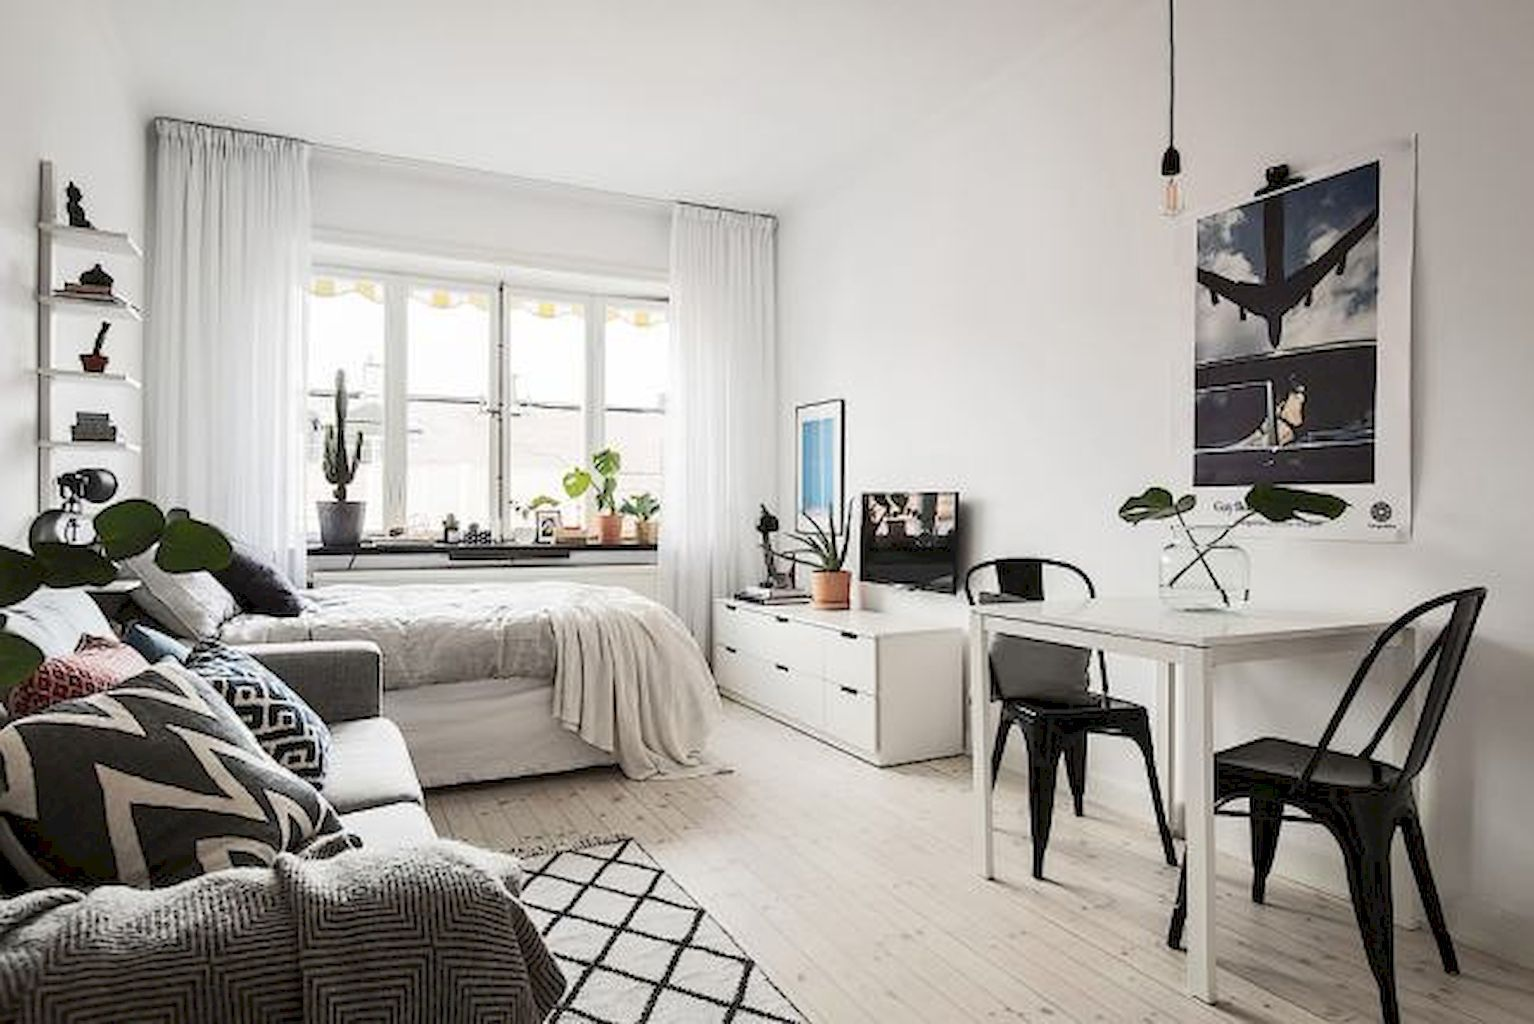 60 Cool Studio Apartment With Scandinavian Style Ideas On A Budget 60 Small Apartment Bedrooms Apartment Decor Inspiration Apartment Bedroom Decor